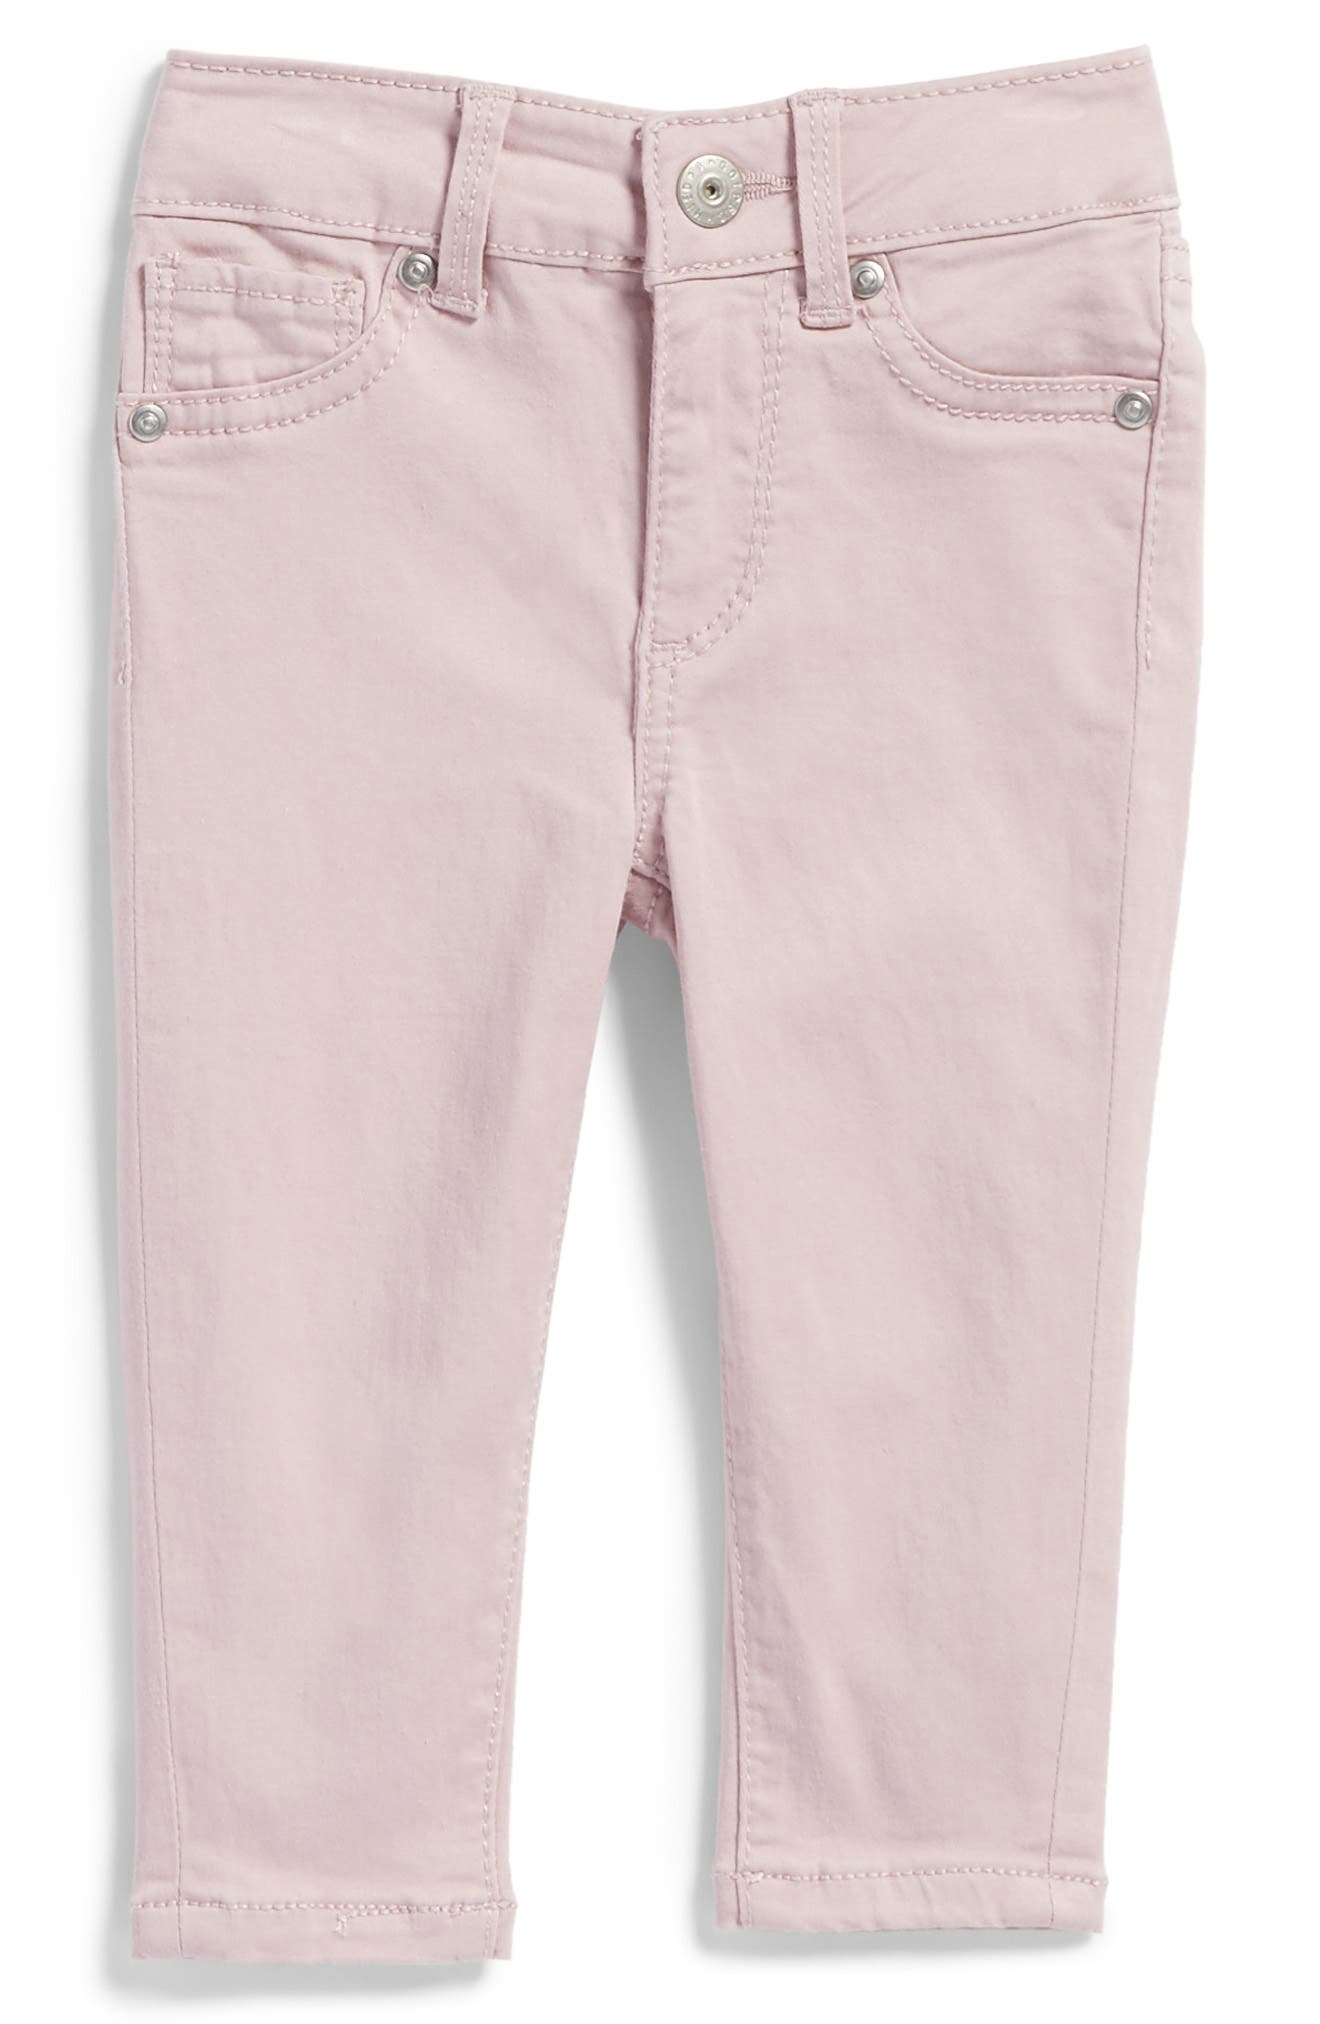 Alternate Image 1 Selected - ag adriano goldschmied kids Twiggy Ankle Skinny Jeans (Baby Girls)